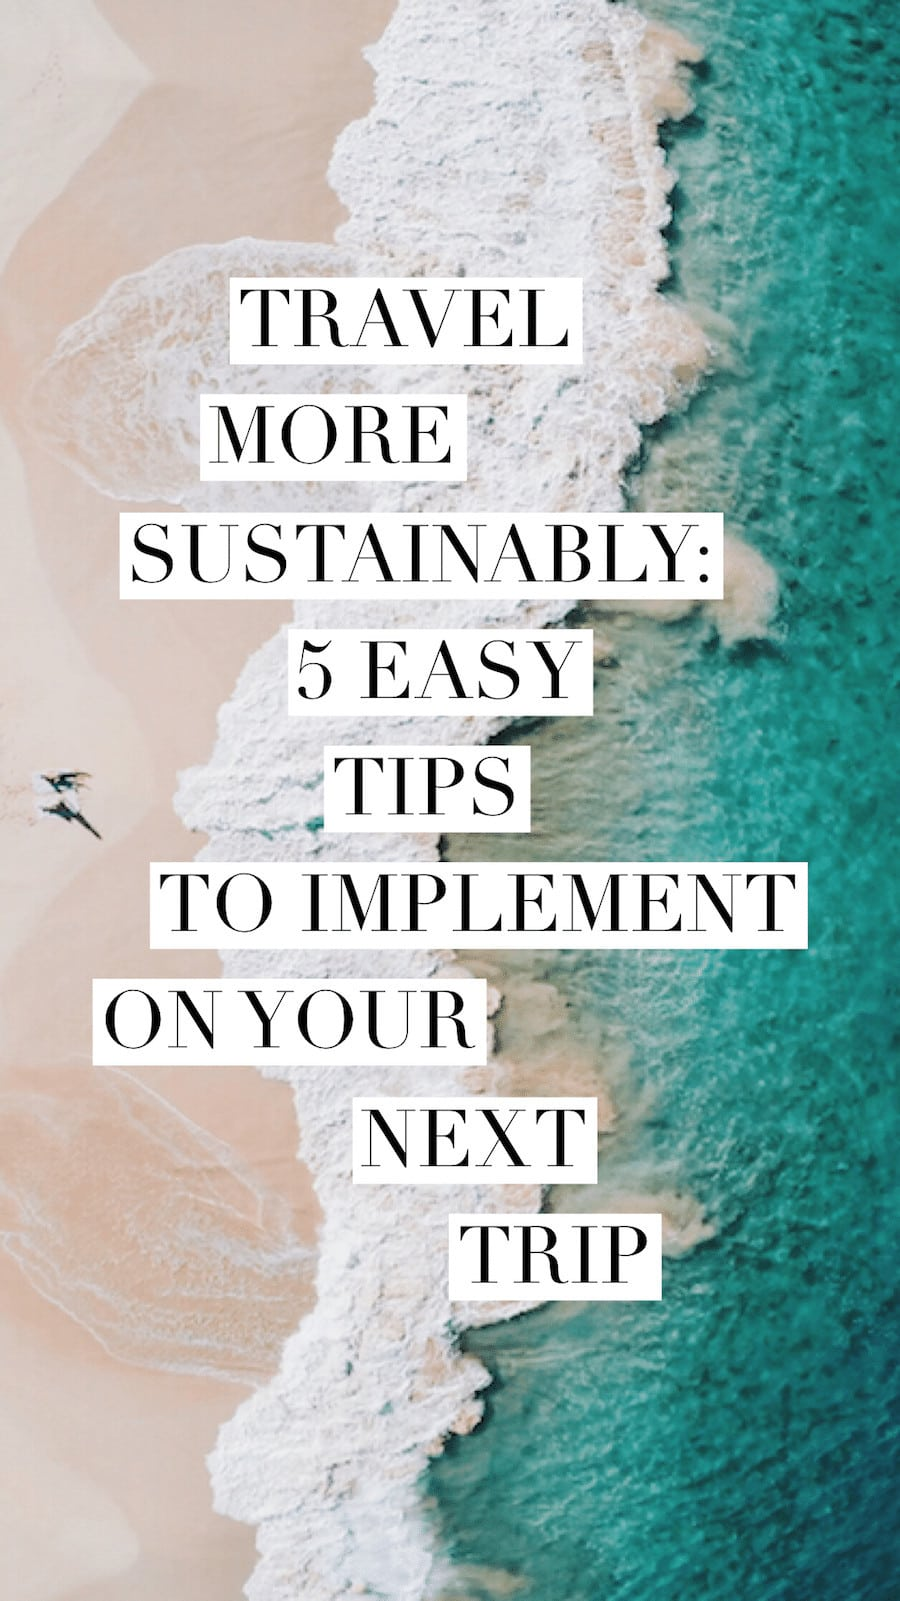 Travel More Sustainably: 5 Easy Tips to Implement on Your Next Trip - Photography by @elanaloo + elanaloo.com + derivecollective.com